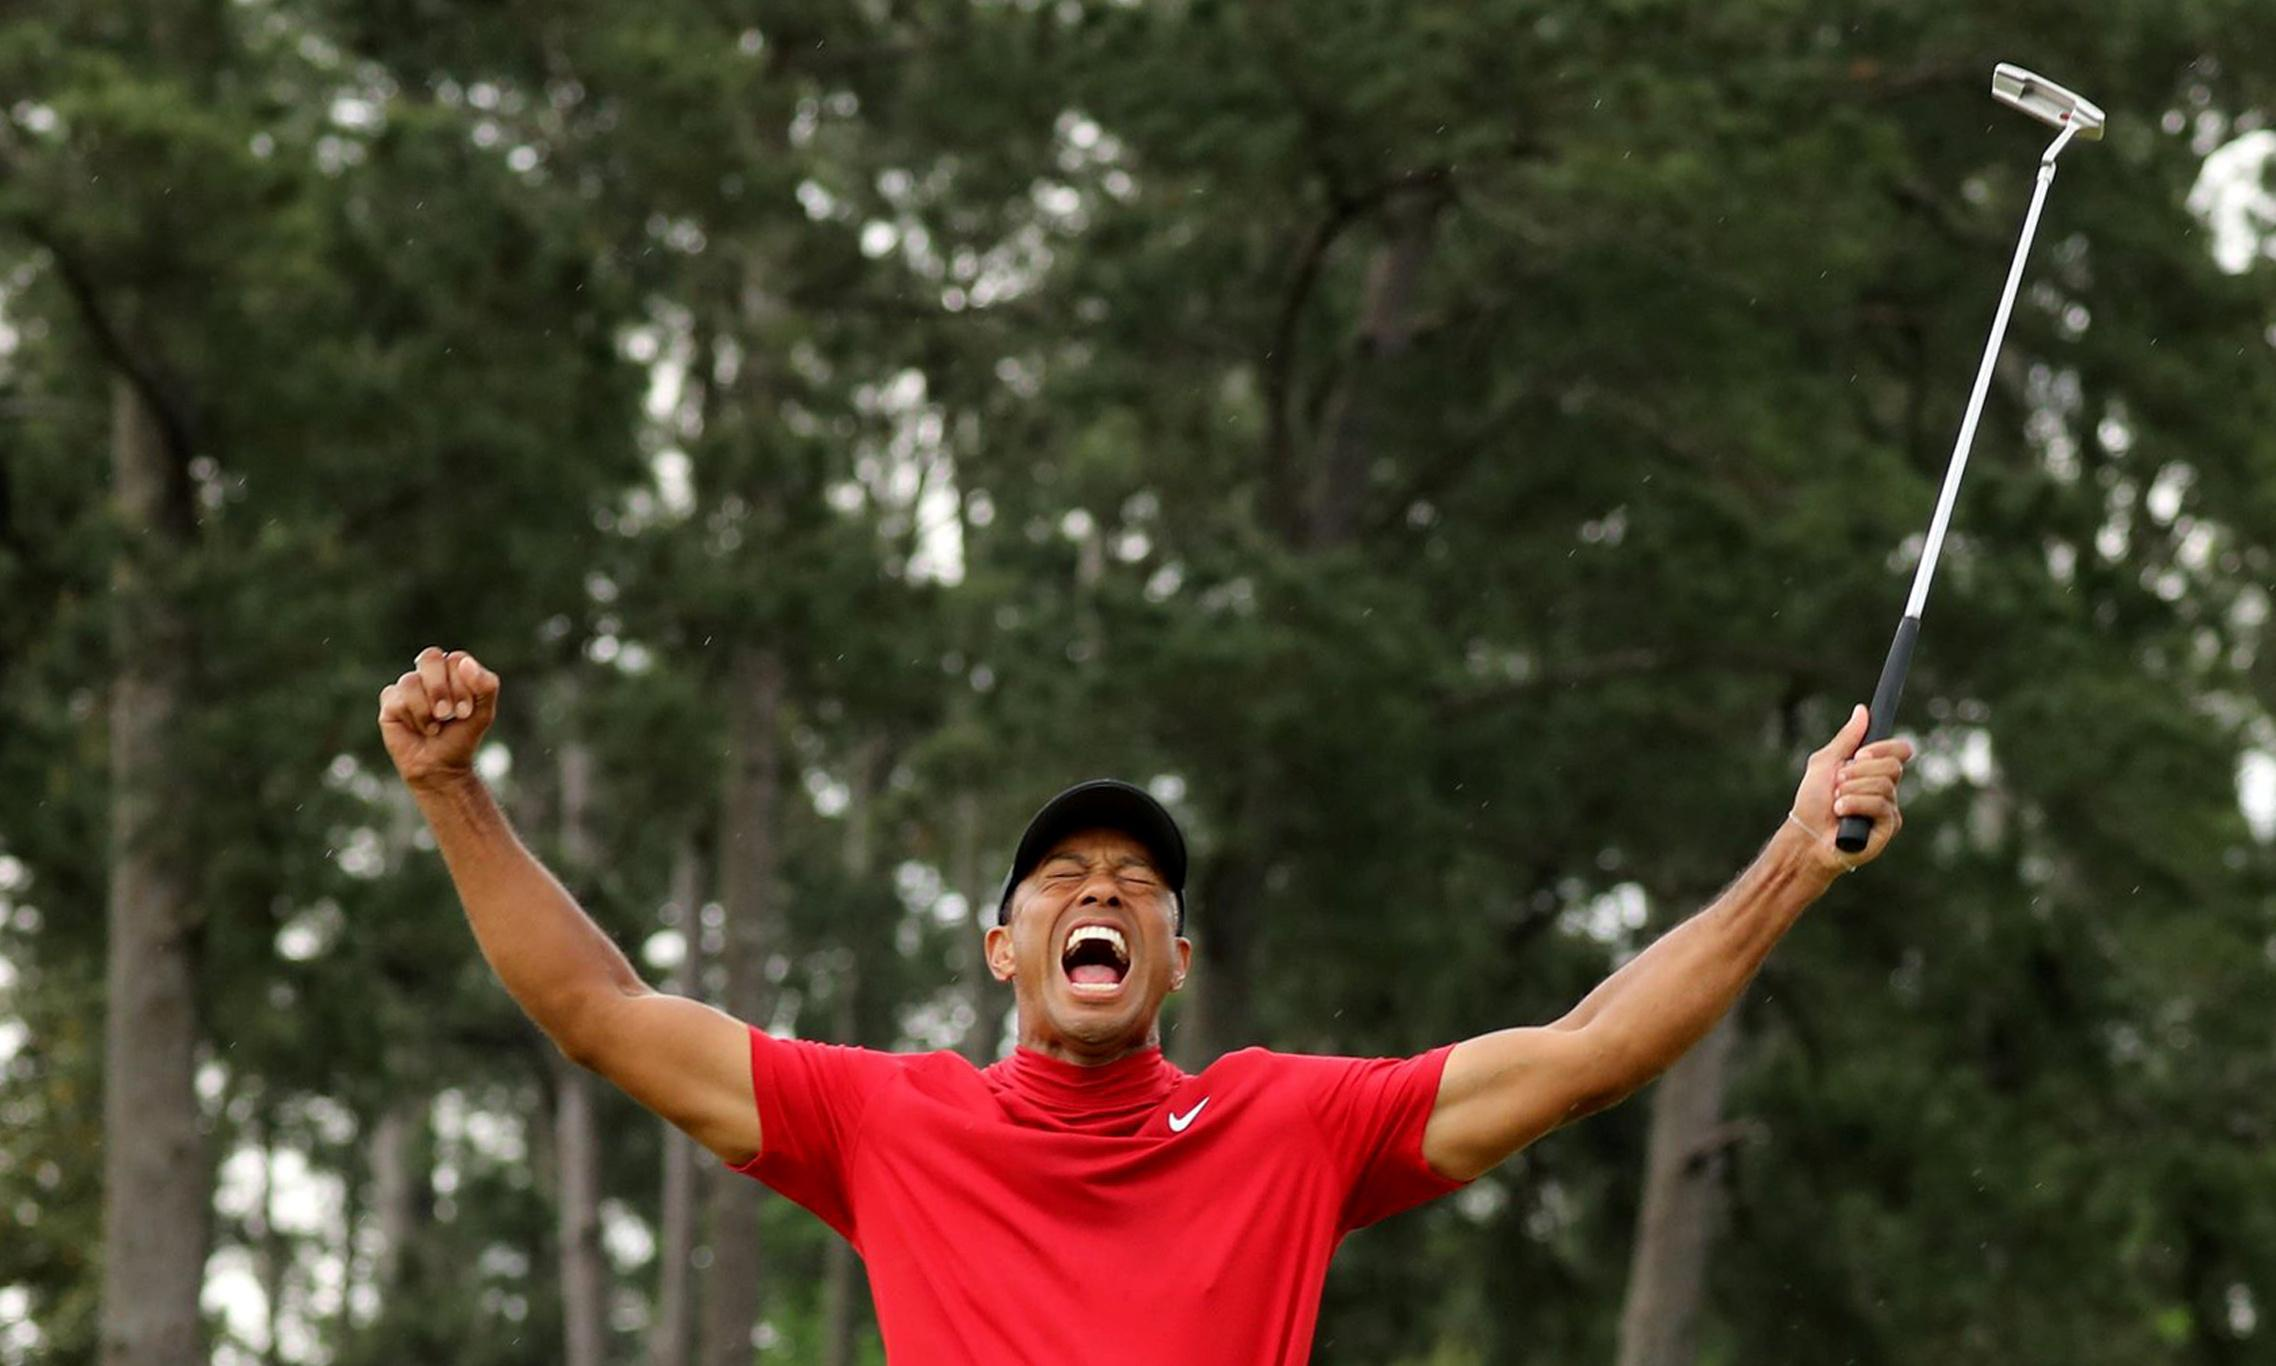 I'm glad Tiger won the Masters, but he's no hero to the Black community